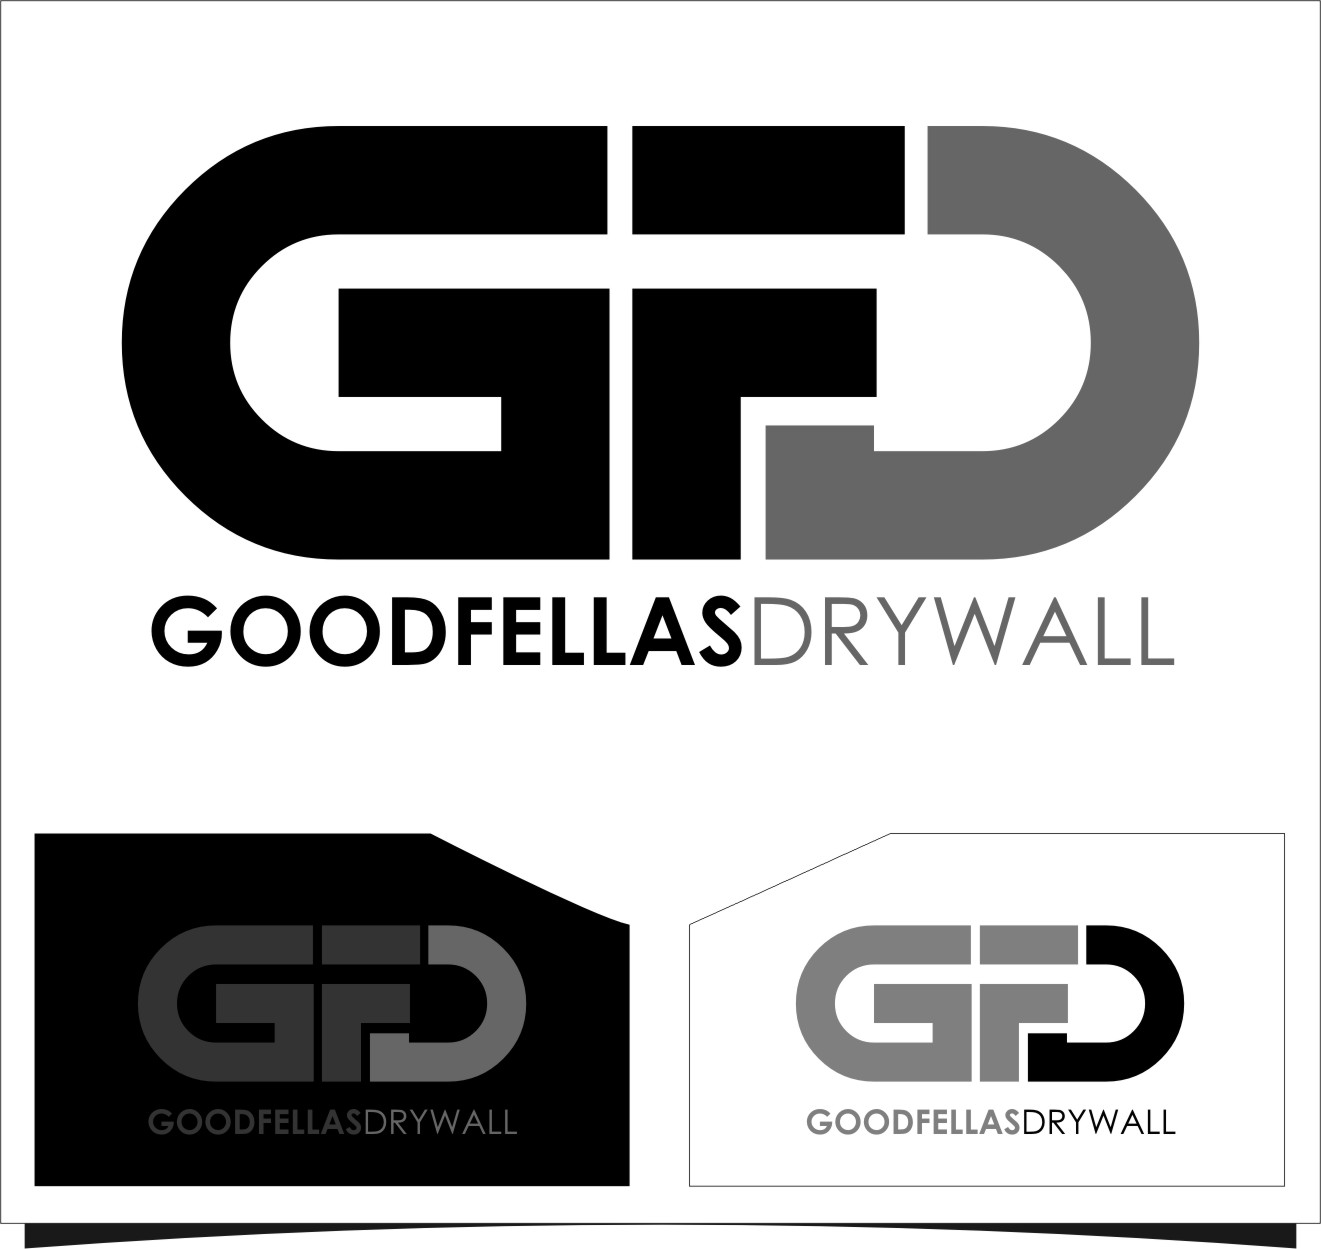 Logo Design by Ngepet_art - Entry No. 51 in the Logo Design Contest Creative Logo Design for Goodfellas Drywall.